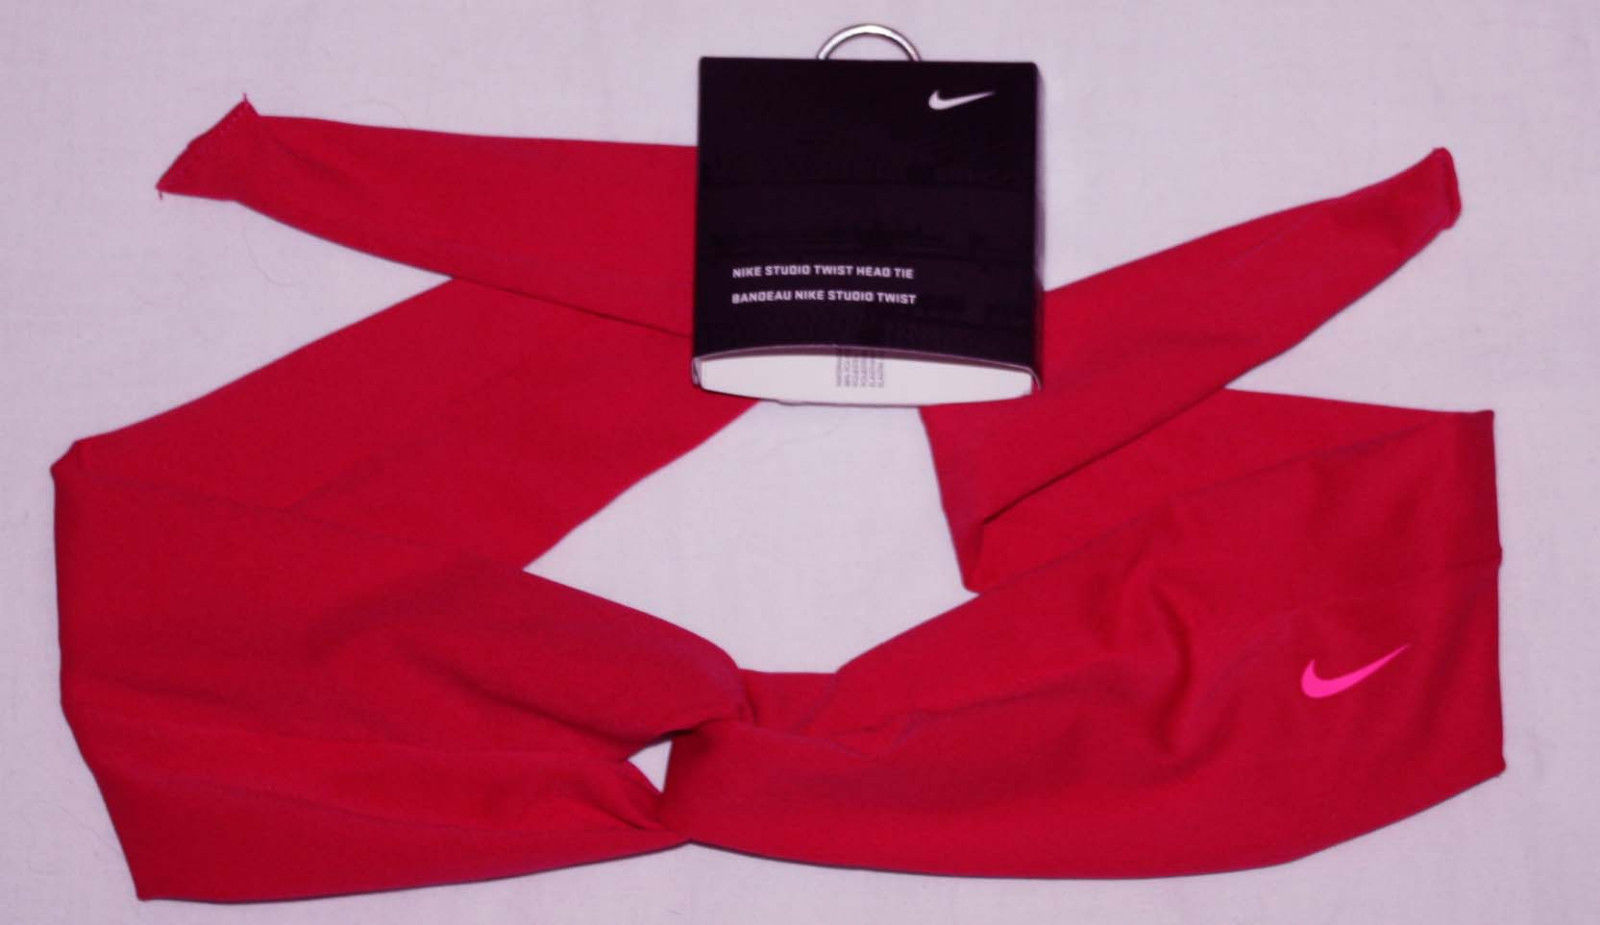 Nike Studio Unisex Twist Dark Pink Punch/Bright Pink Swoosh Head Tie (One Size) 11411